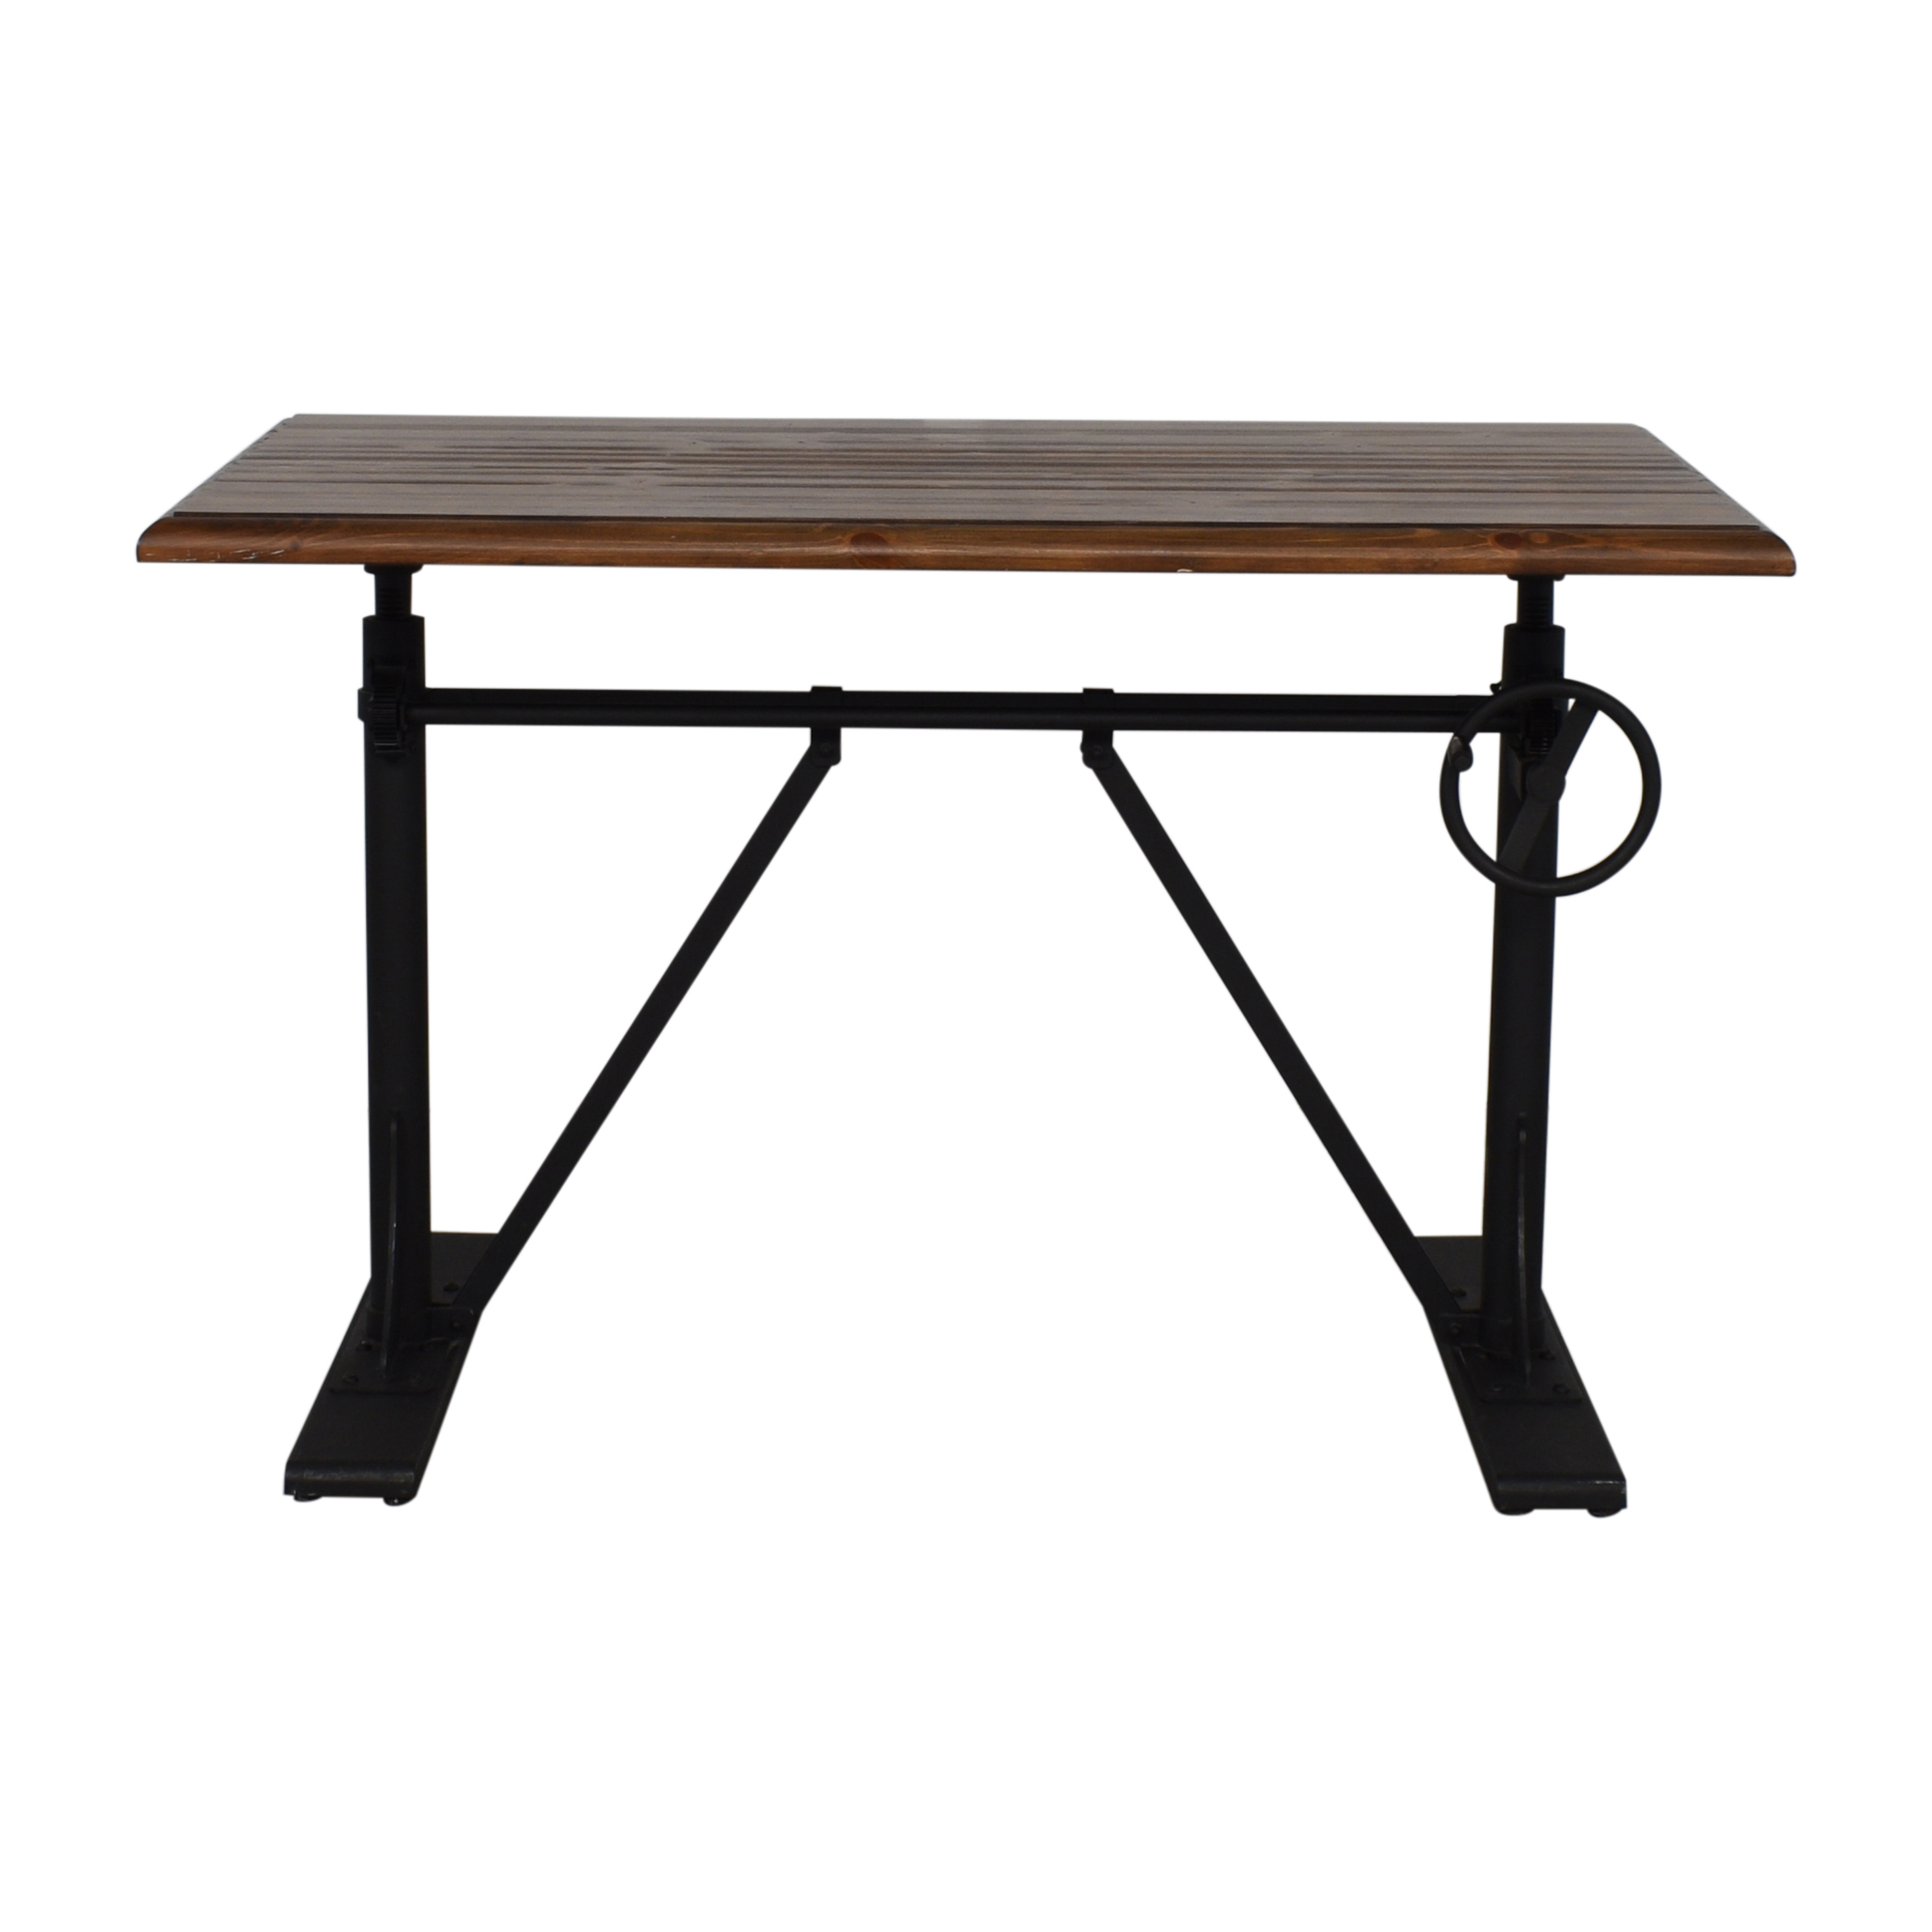 Pottery Barn Pottery Barn Pittsburgh Crank Standing Desk on sale